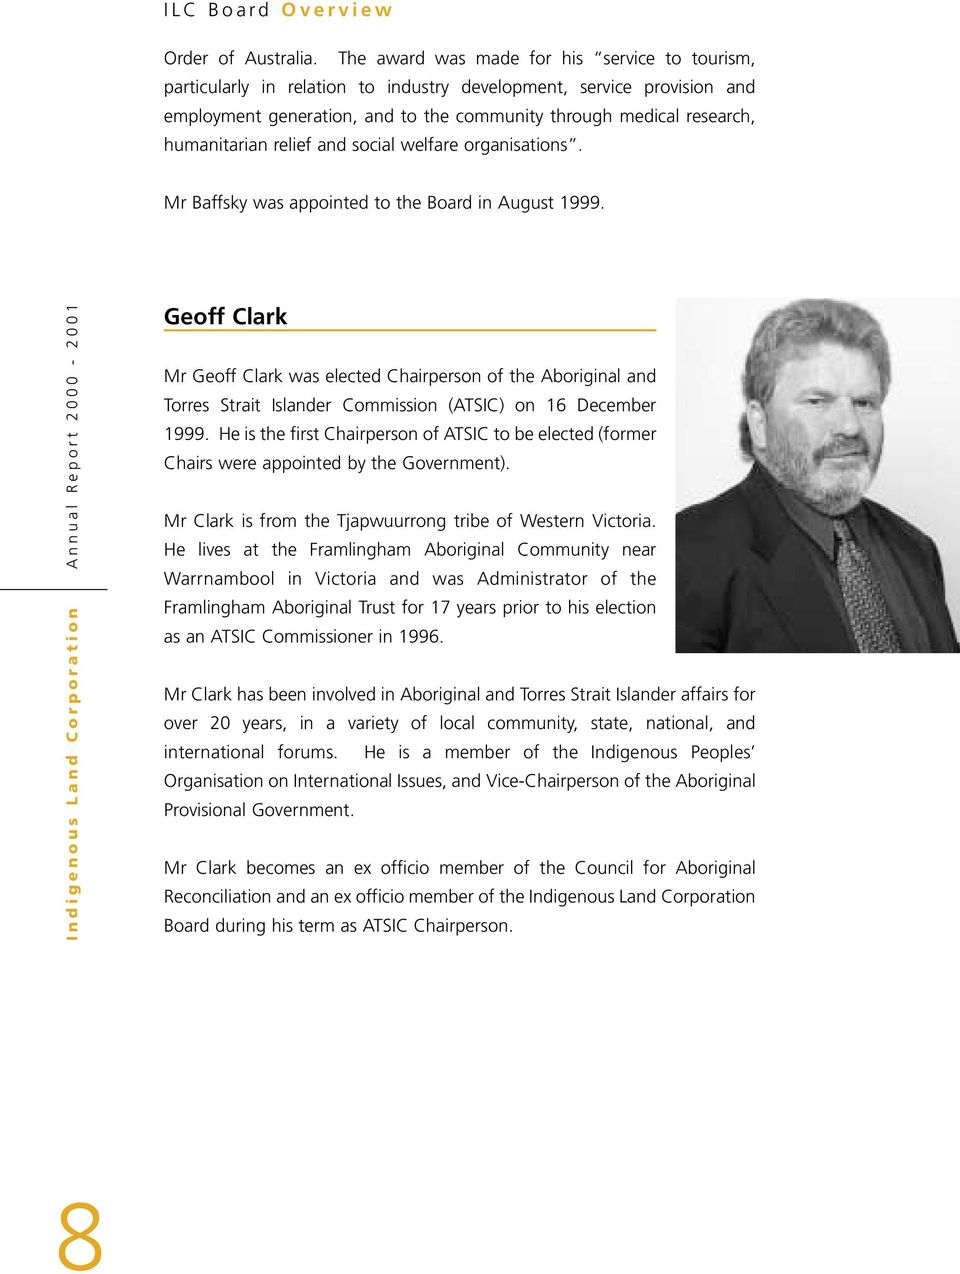 humanitarian relief and social welfare organisations. Mr Baffsky was appointed to the Board in August 1999.